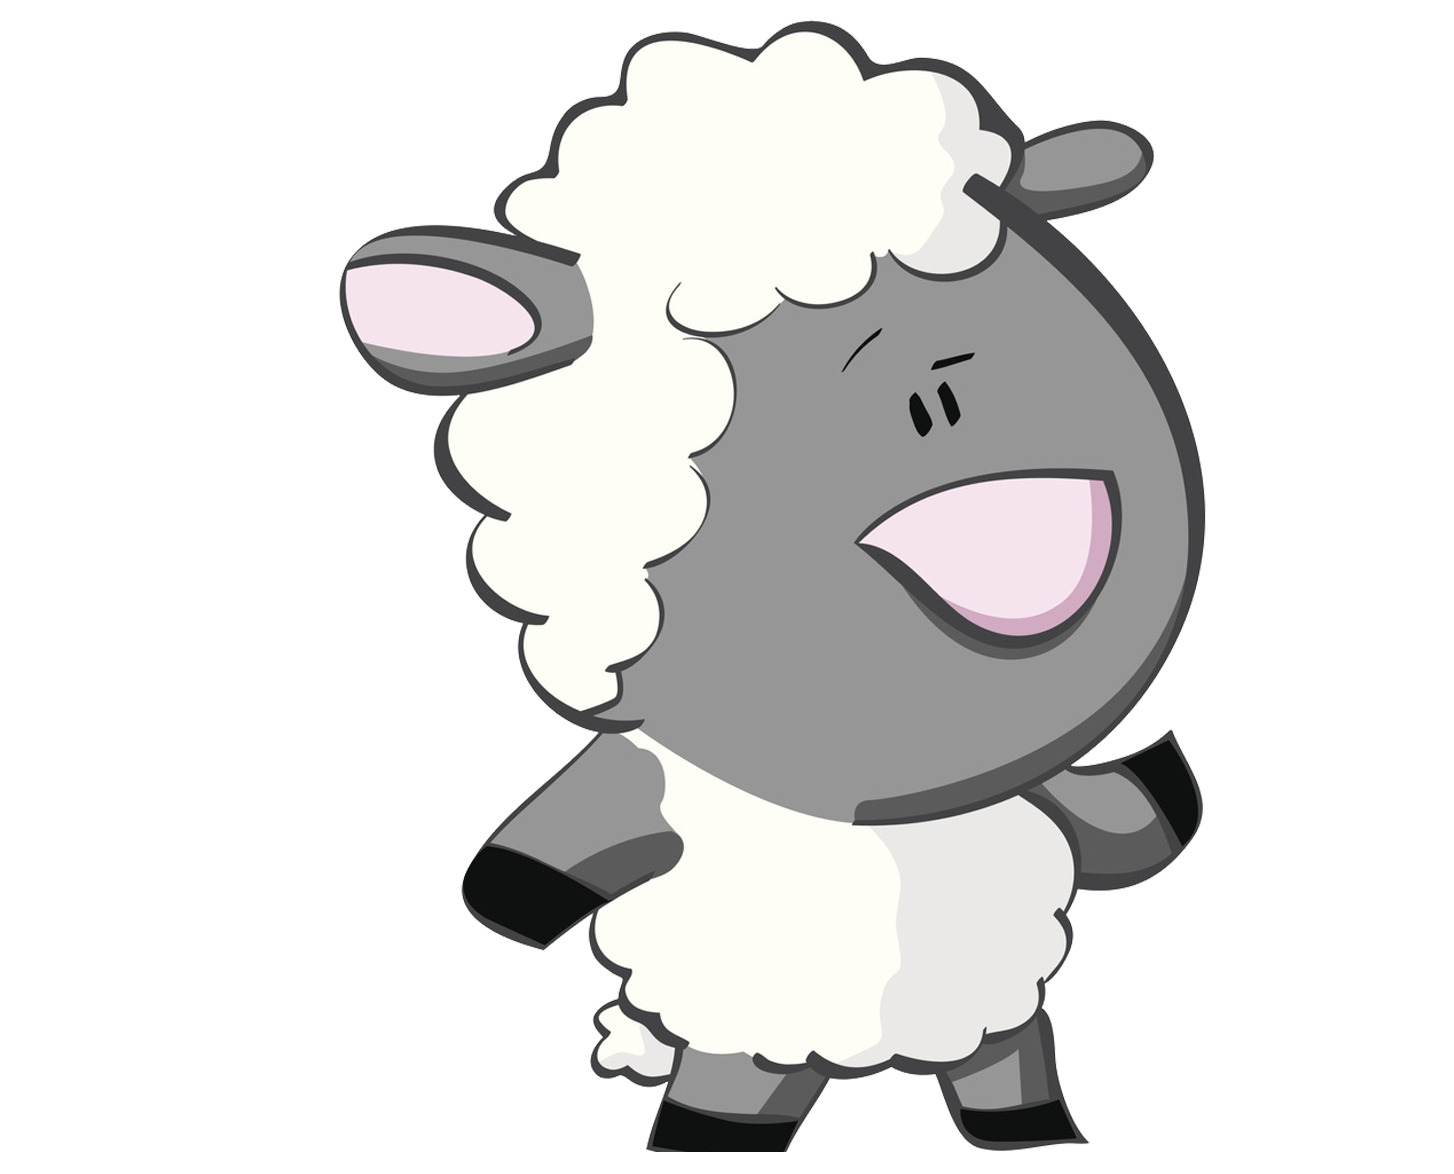 clip art transparent download Goat black and white clipart. Sheep cartoon gray puzzled